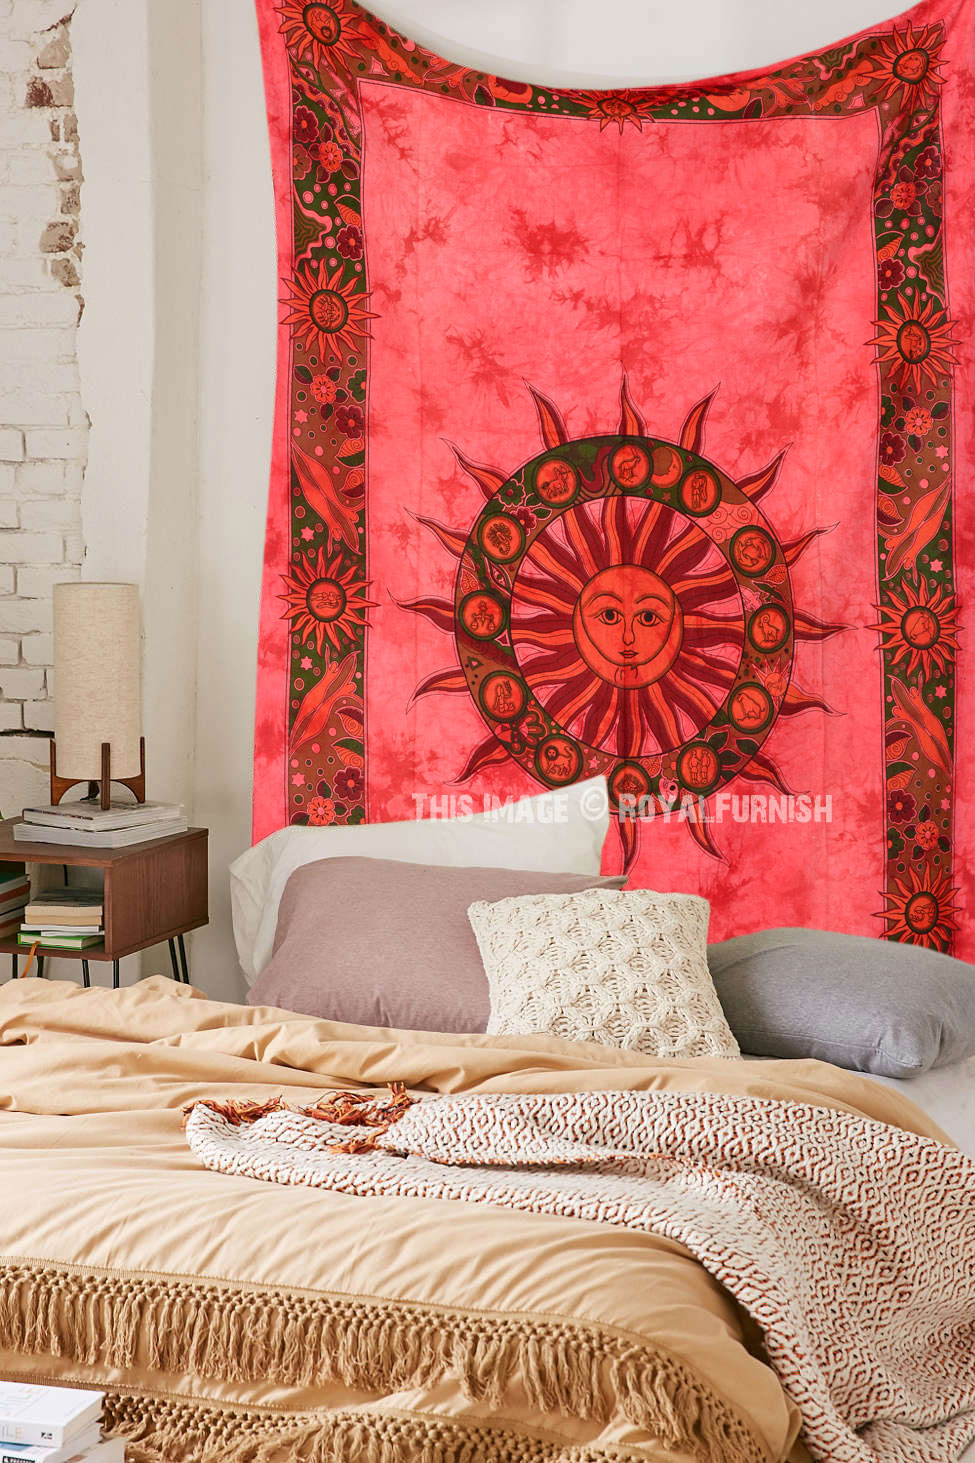 Small Red Celestial Sun Tapestry Hippie Tie Dye Tapestry Bedding Throw